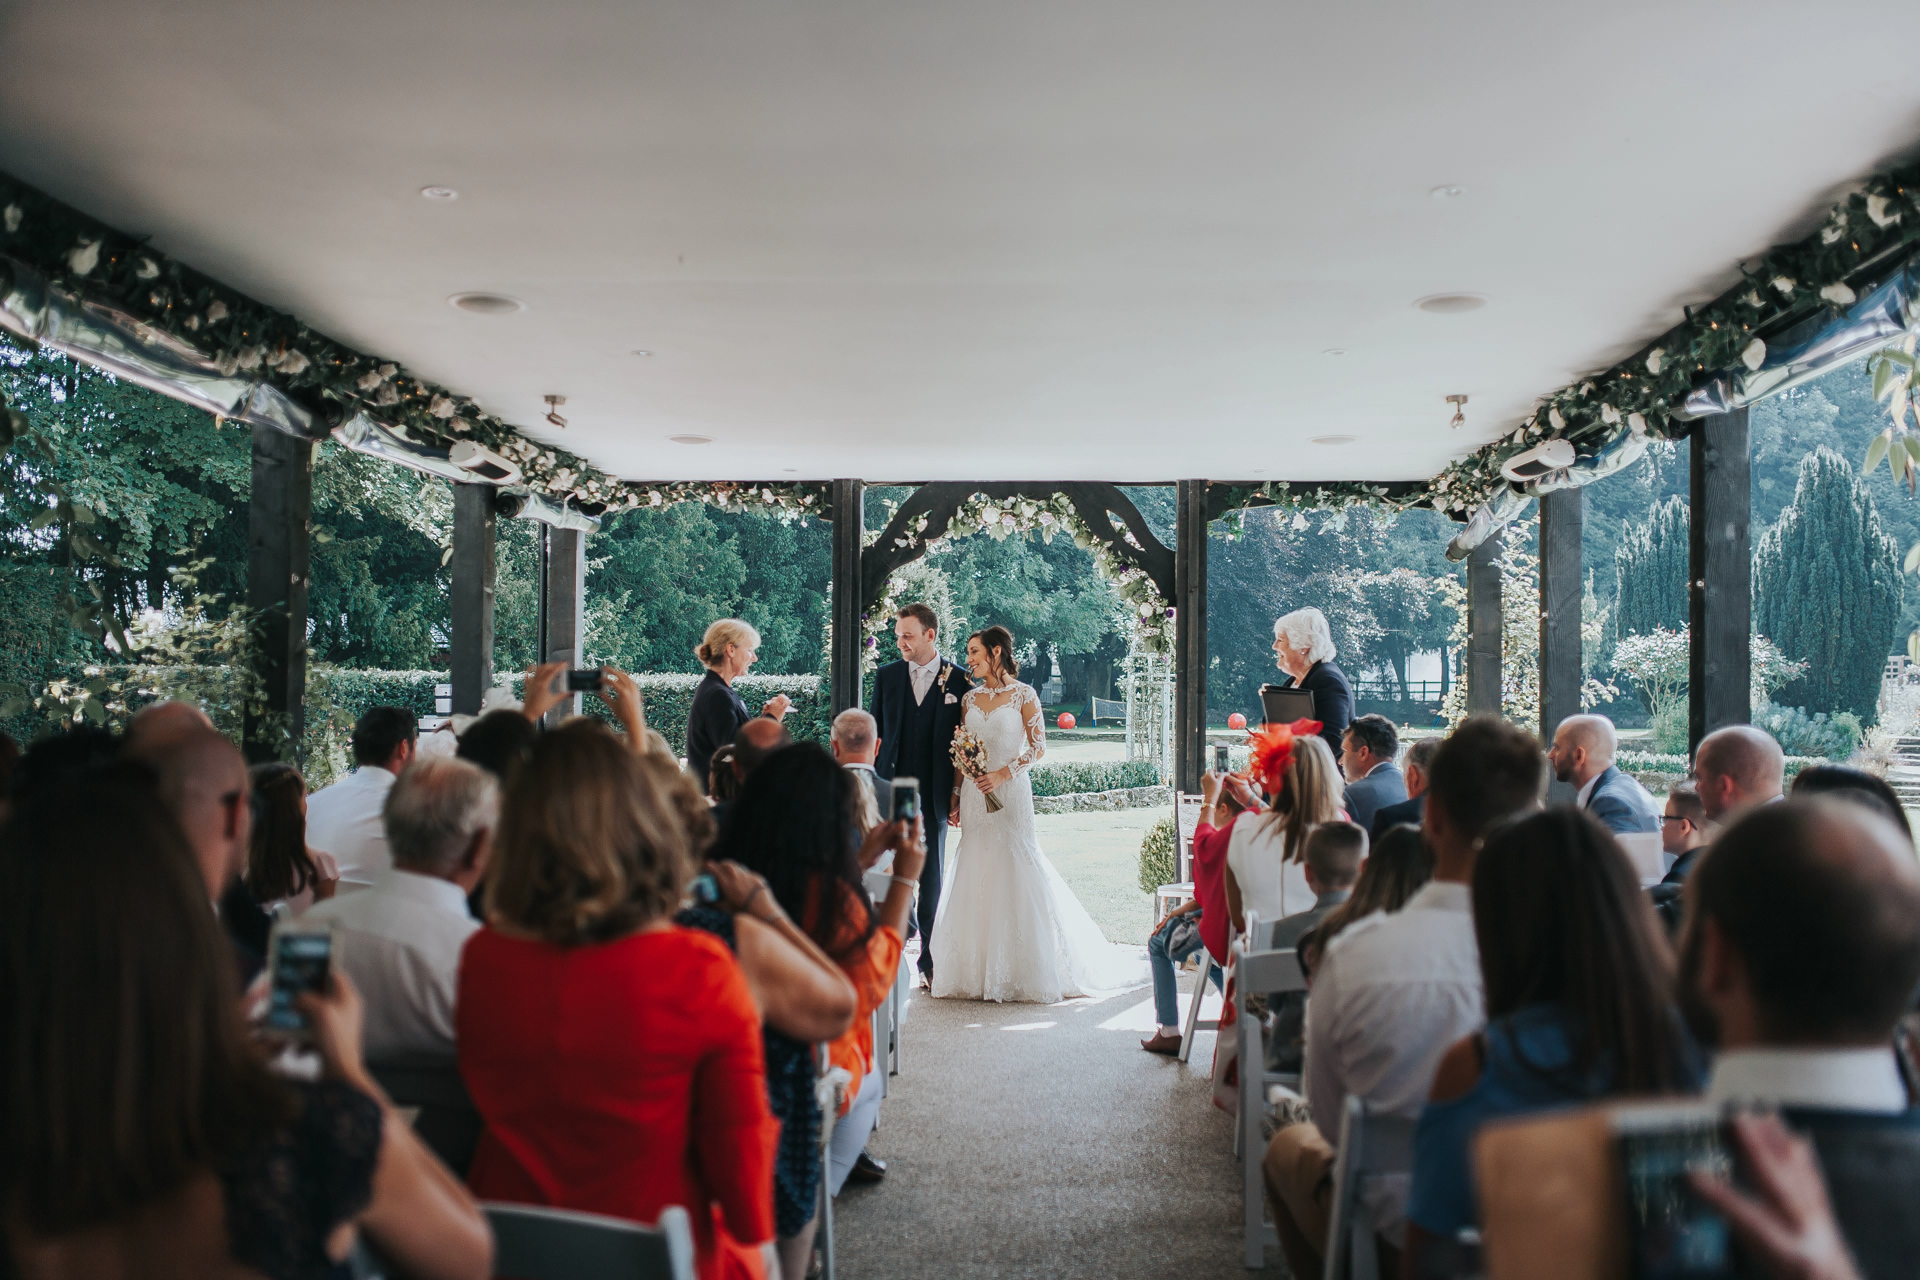 why have an unplugged wedding - ban camera mobile phones at wedding ceremony